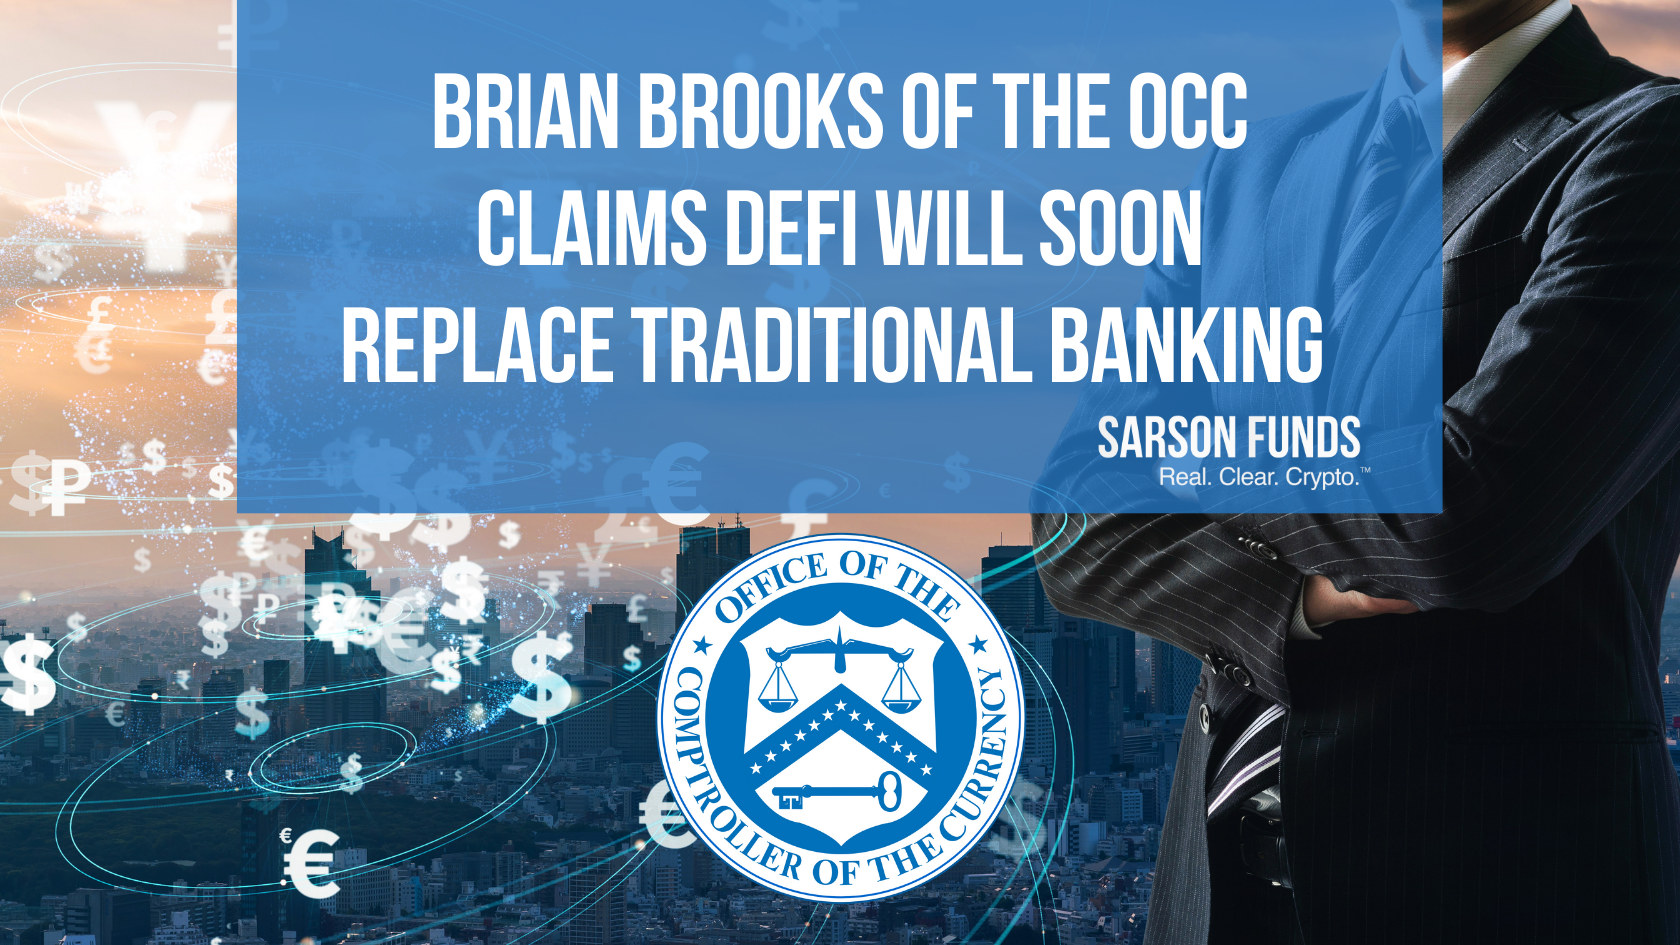 OCC Says Decentralized Finance Will Soon Replace Traditional Financial Services